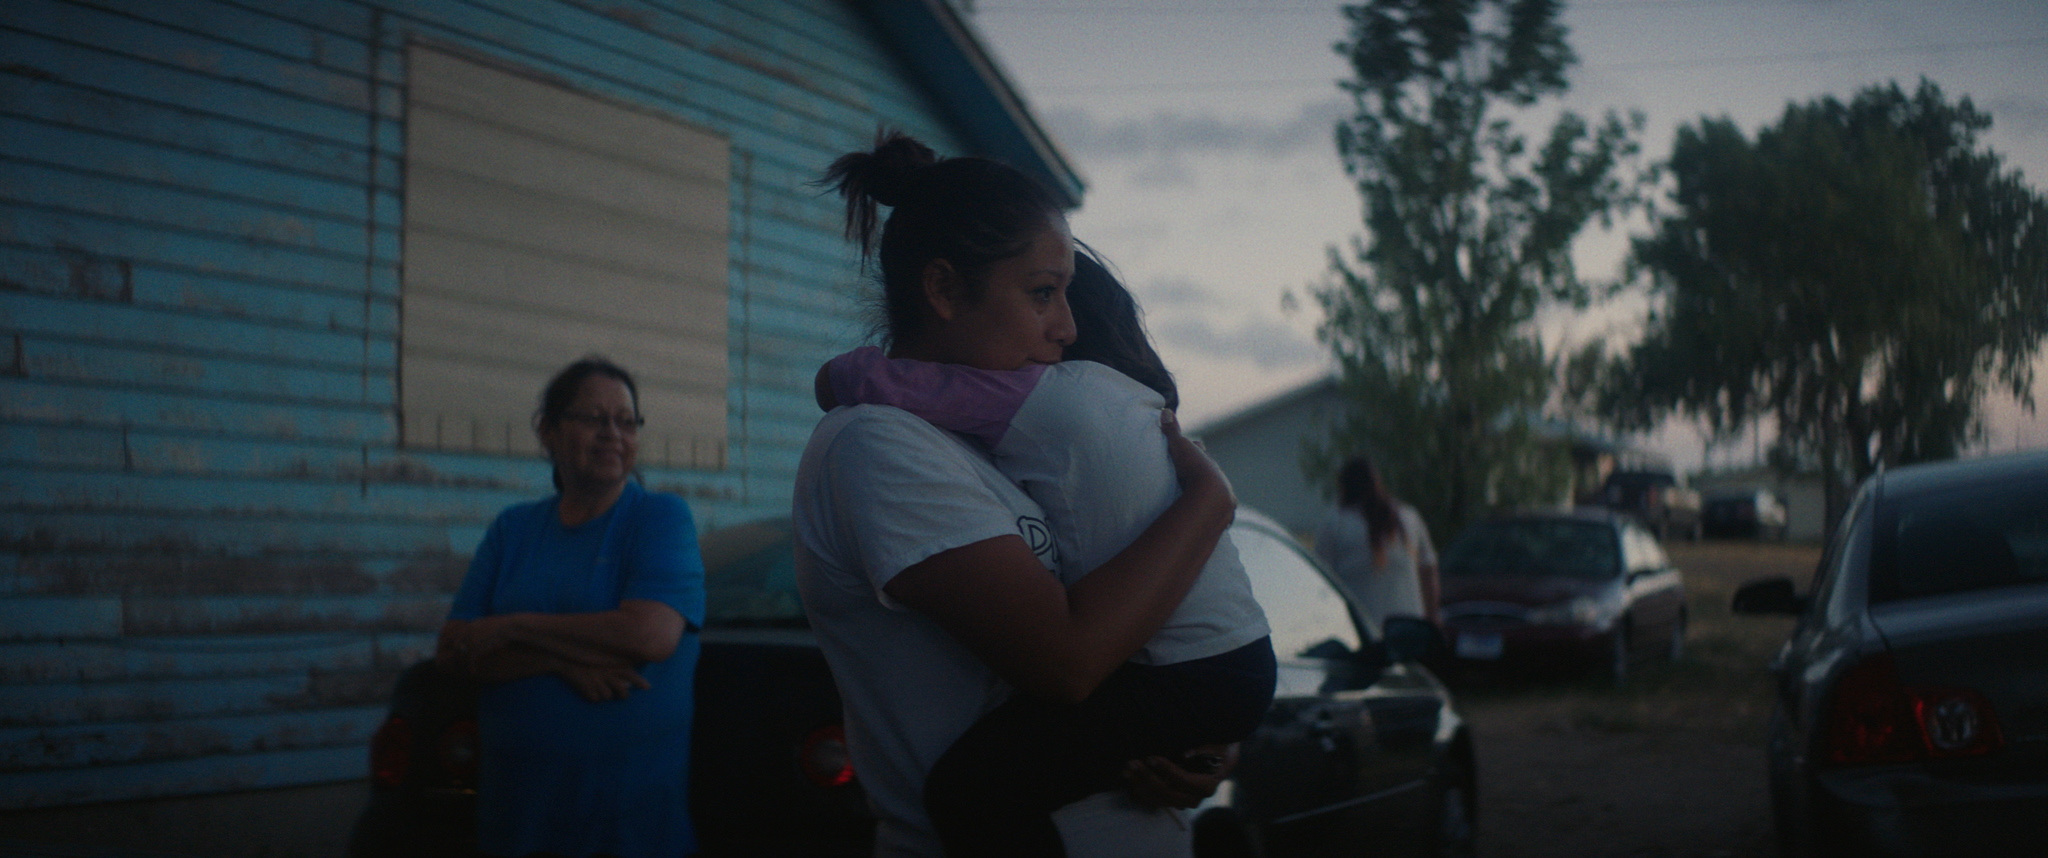 Lakota_in_America_ProRes_Master.mov.00_13_13_19.Still045.png